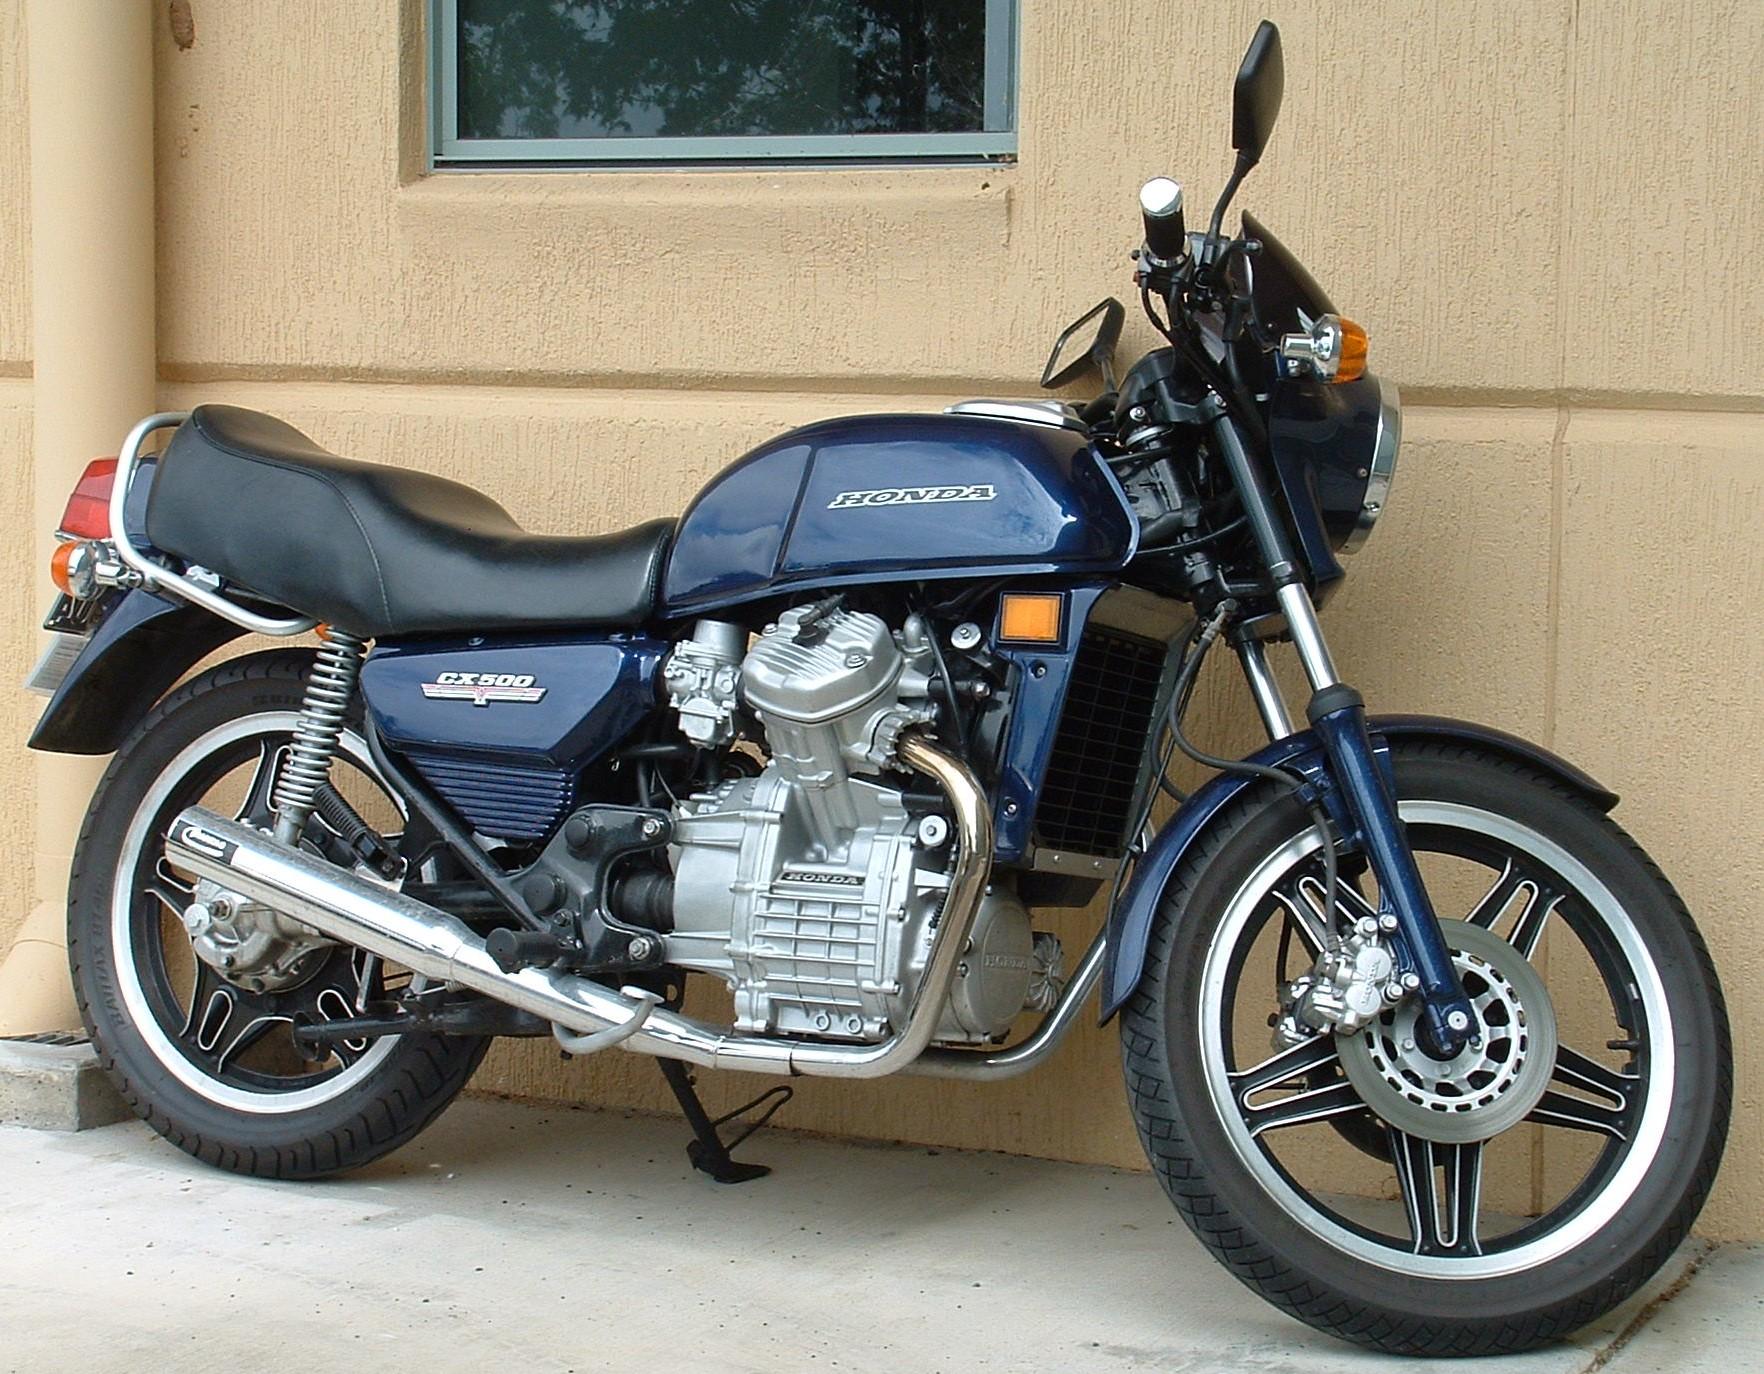 Honda Cx Series Wikipedia Motorcycles Shadow 500 Wiring Diagram